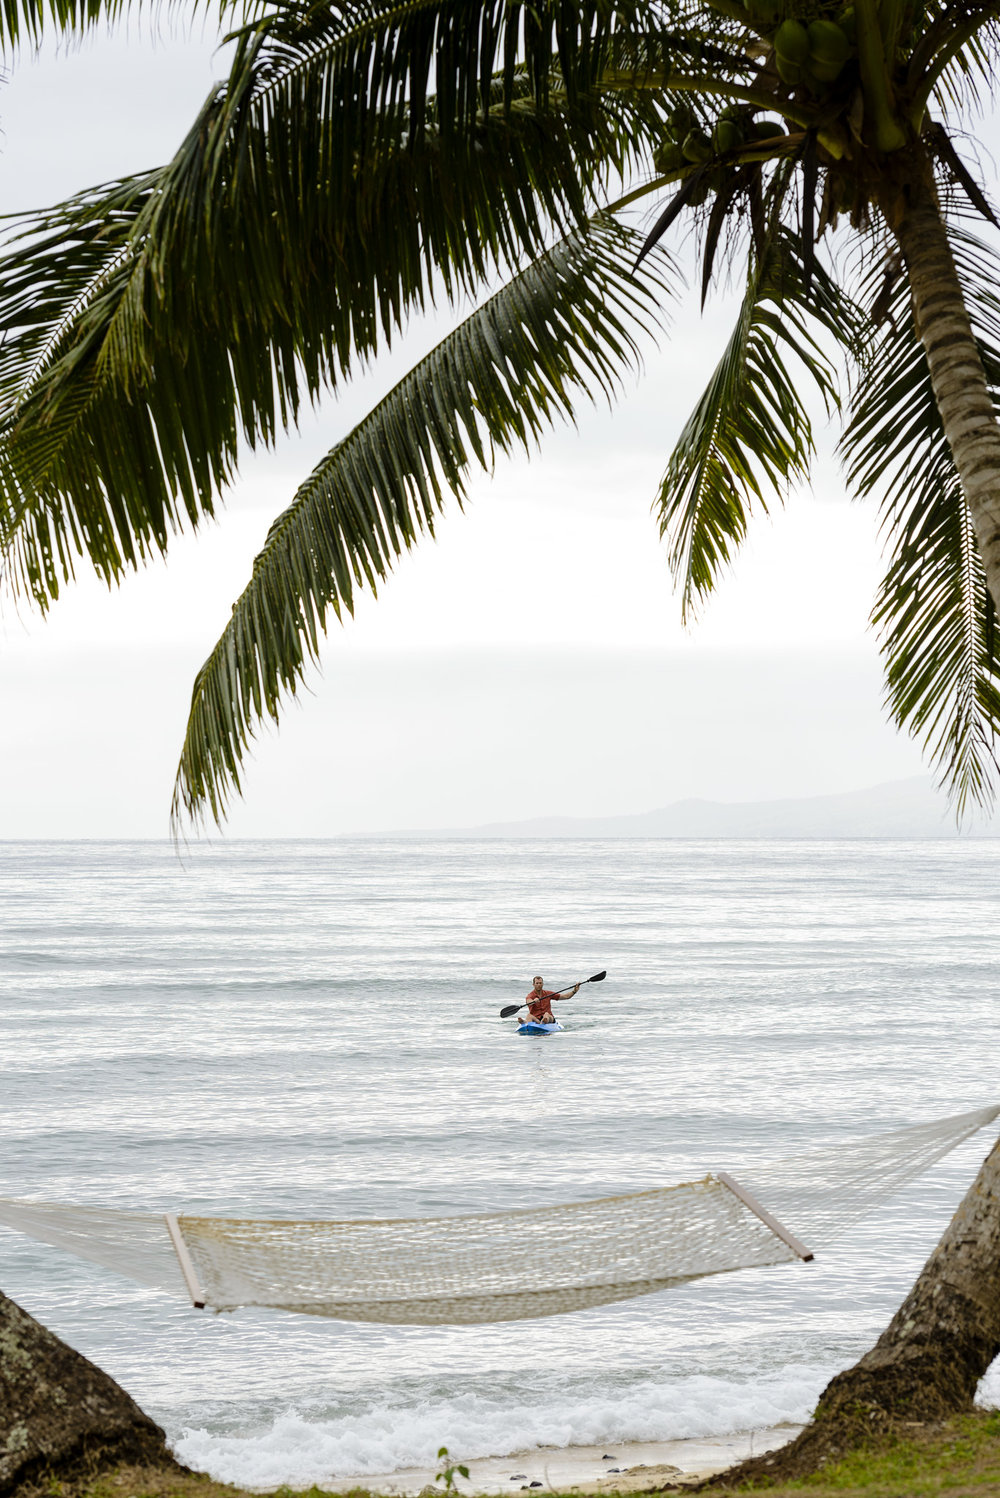 Kayak and Hammock - The Remote Resort Fiji Islands - Boutique Luxury Fiji Resort